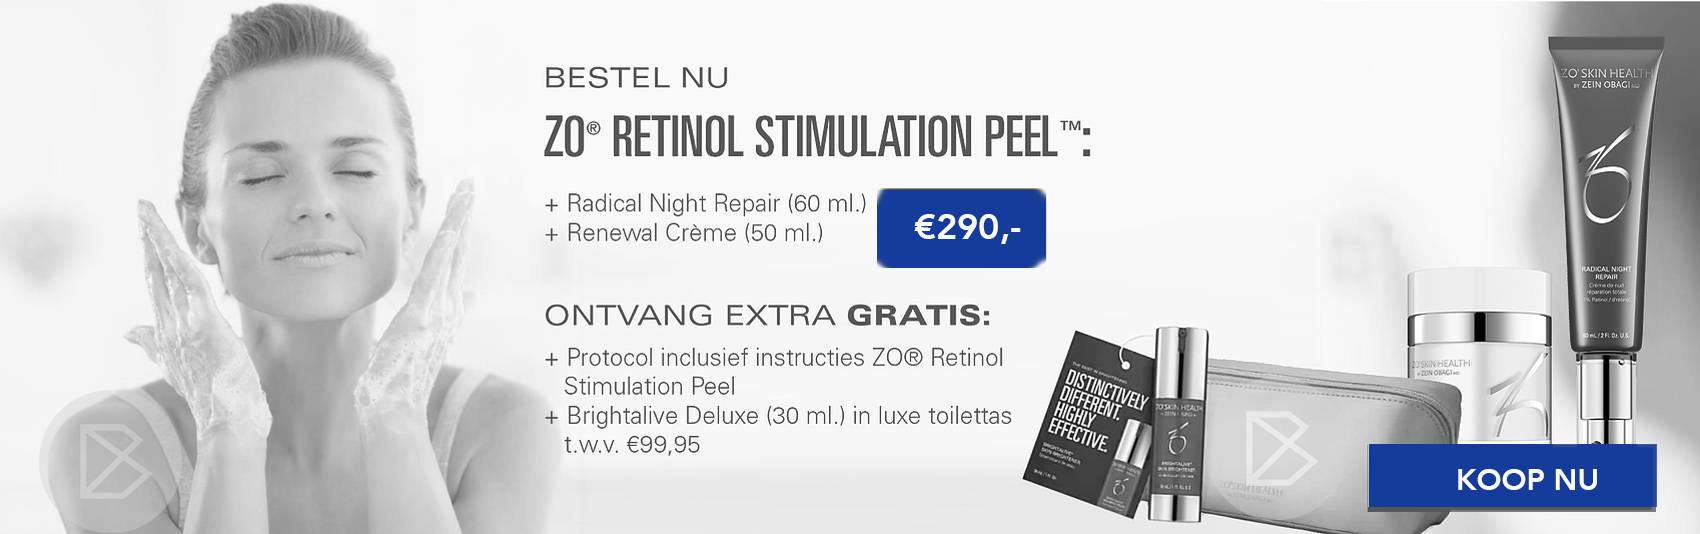 Retinol Stimulation peel header